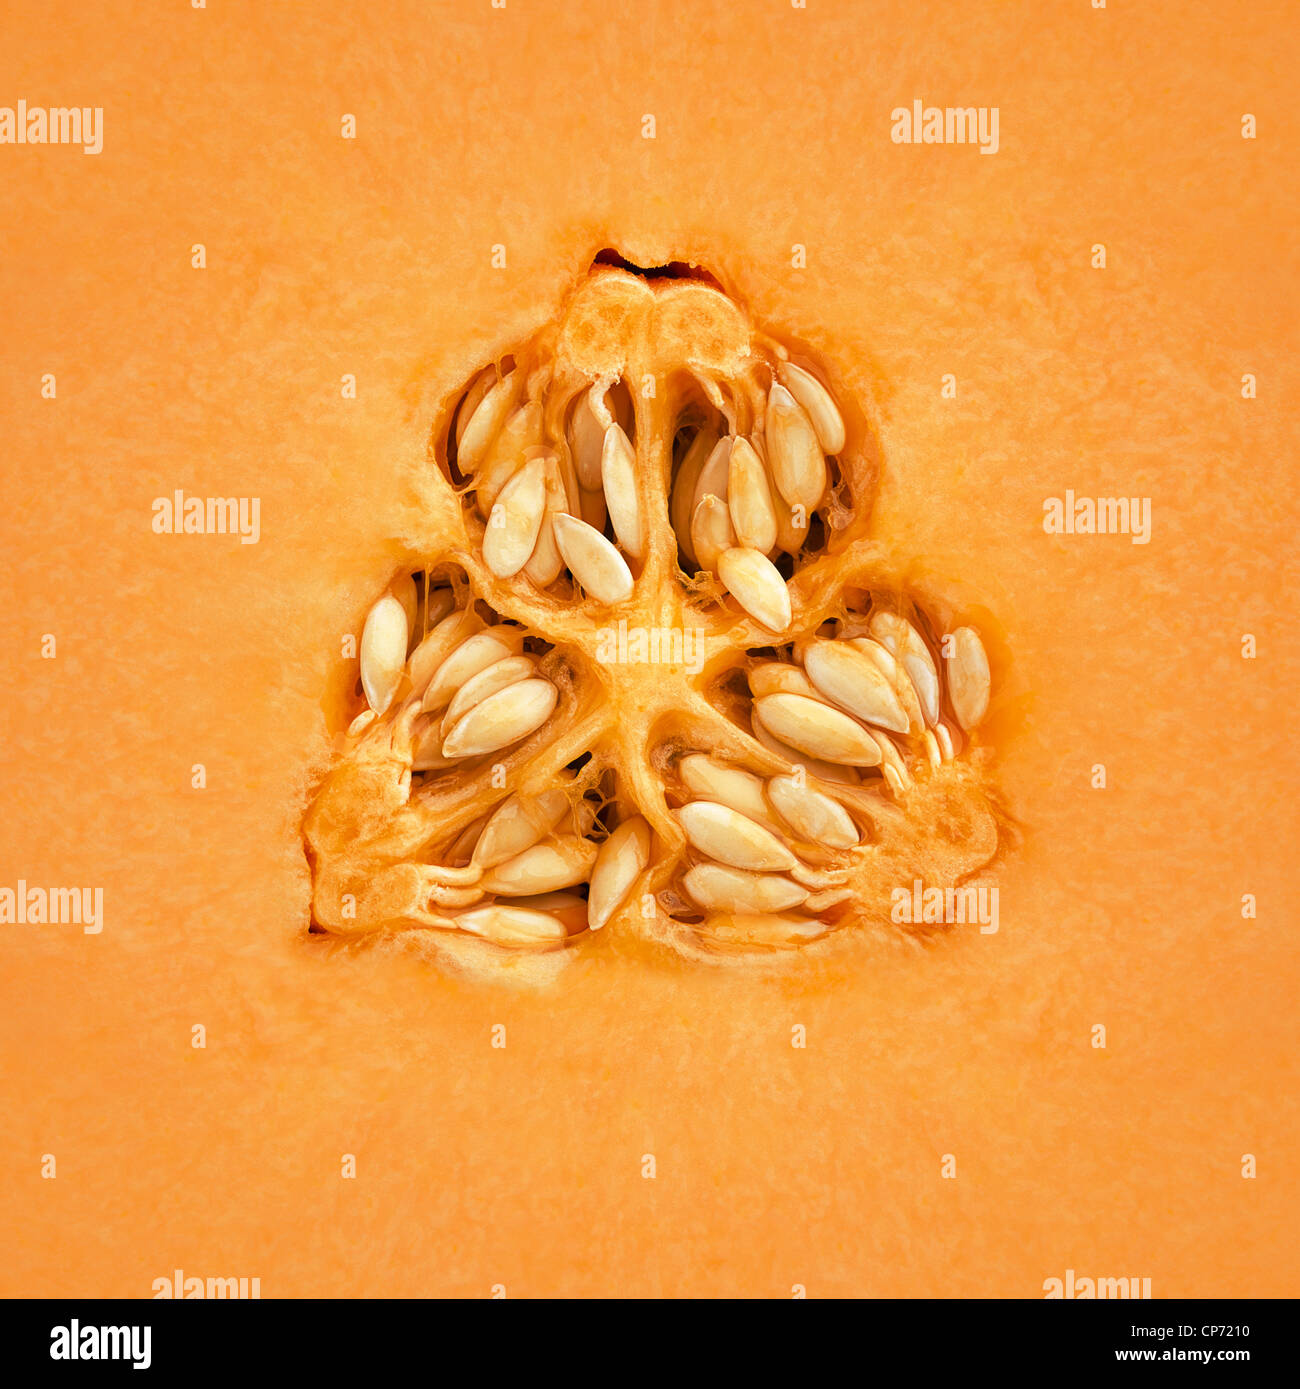 Close-up d'un melon cantaloup à l'intérieur Photo Stock